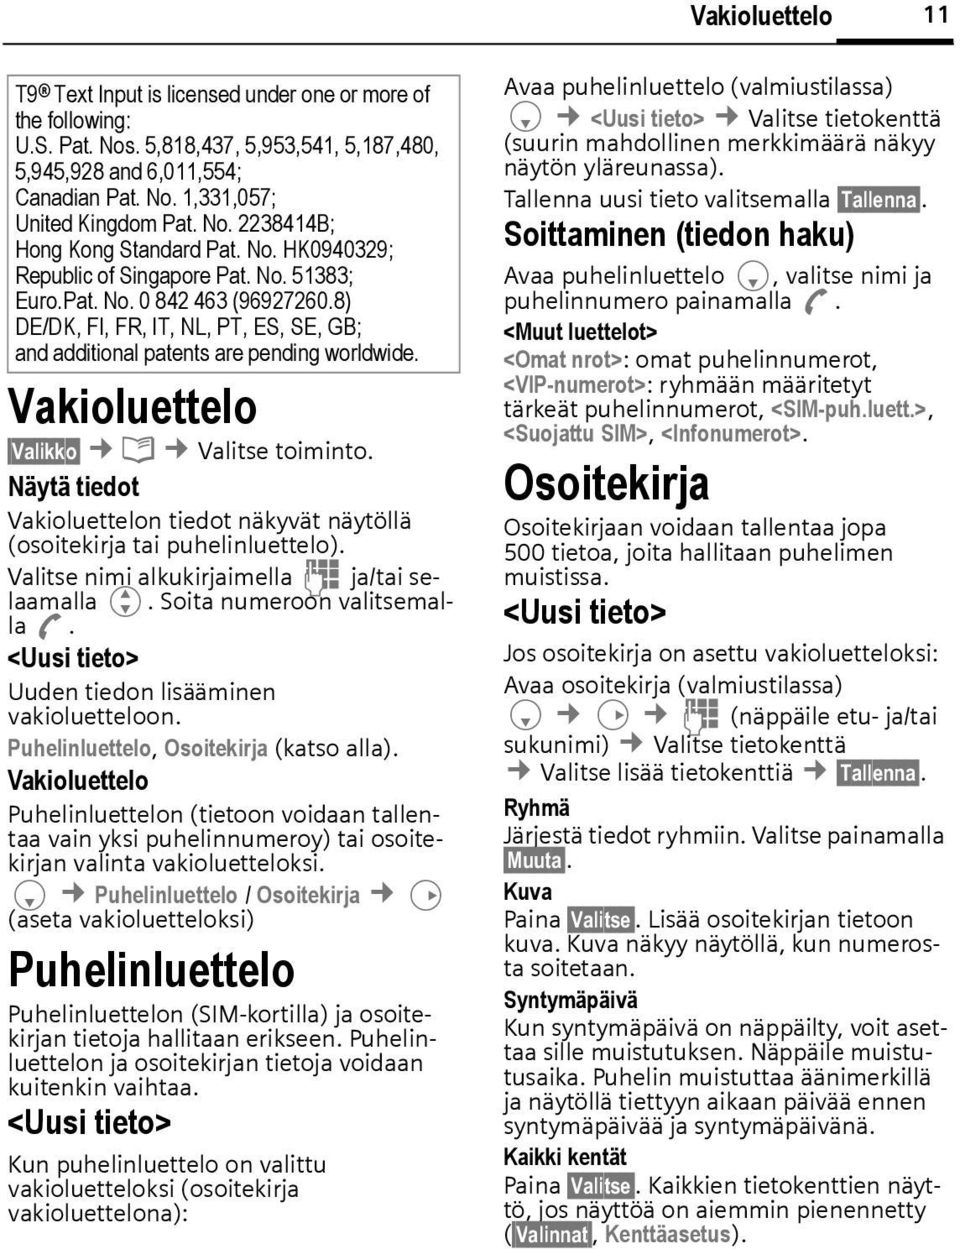 8) DE/DK, FI, FR, IT, NL, PT, ES, SE, GB; and additional patents are pending worldwide. Vakioluettelo Valikko è Valitse toiminto.